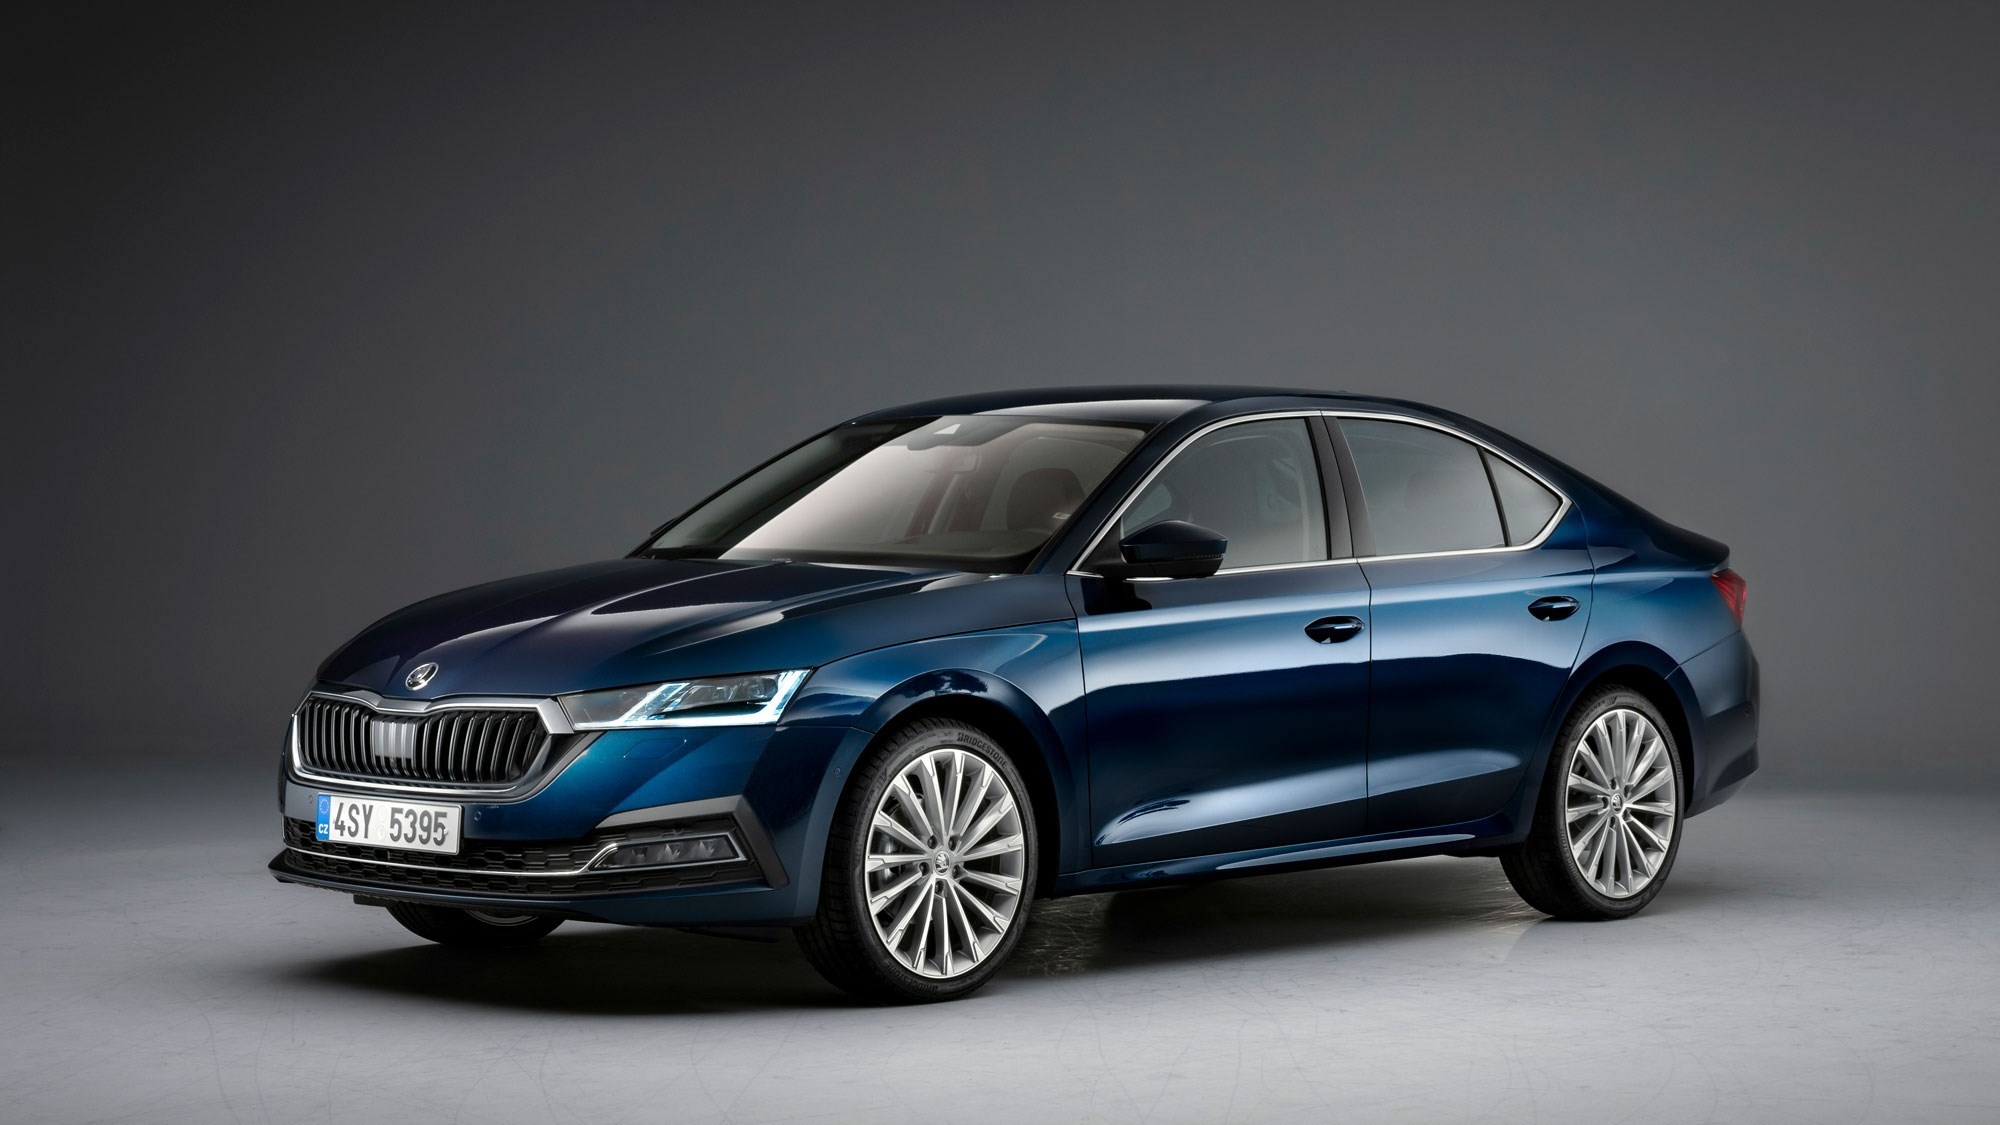 Fourth-Generation Skoda Octavia Gets Plug-In Hybrid For 1st Time